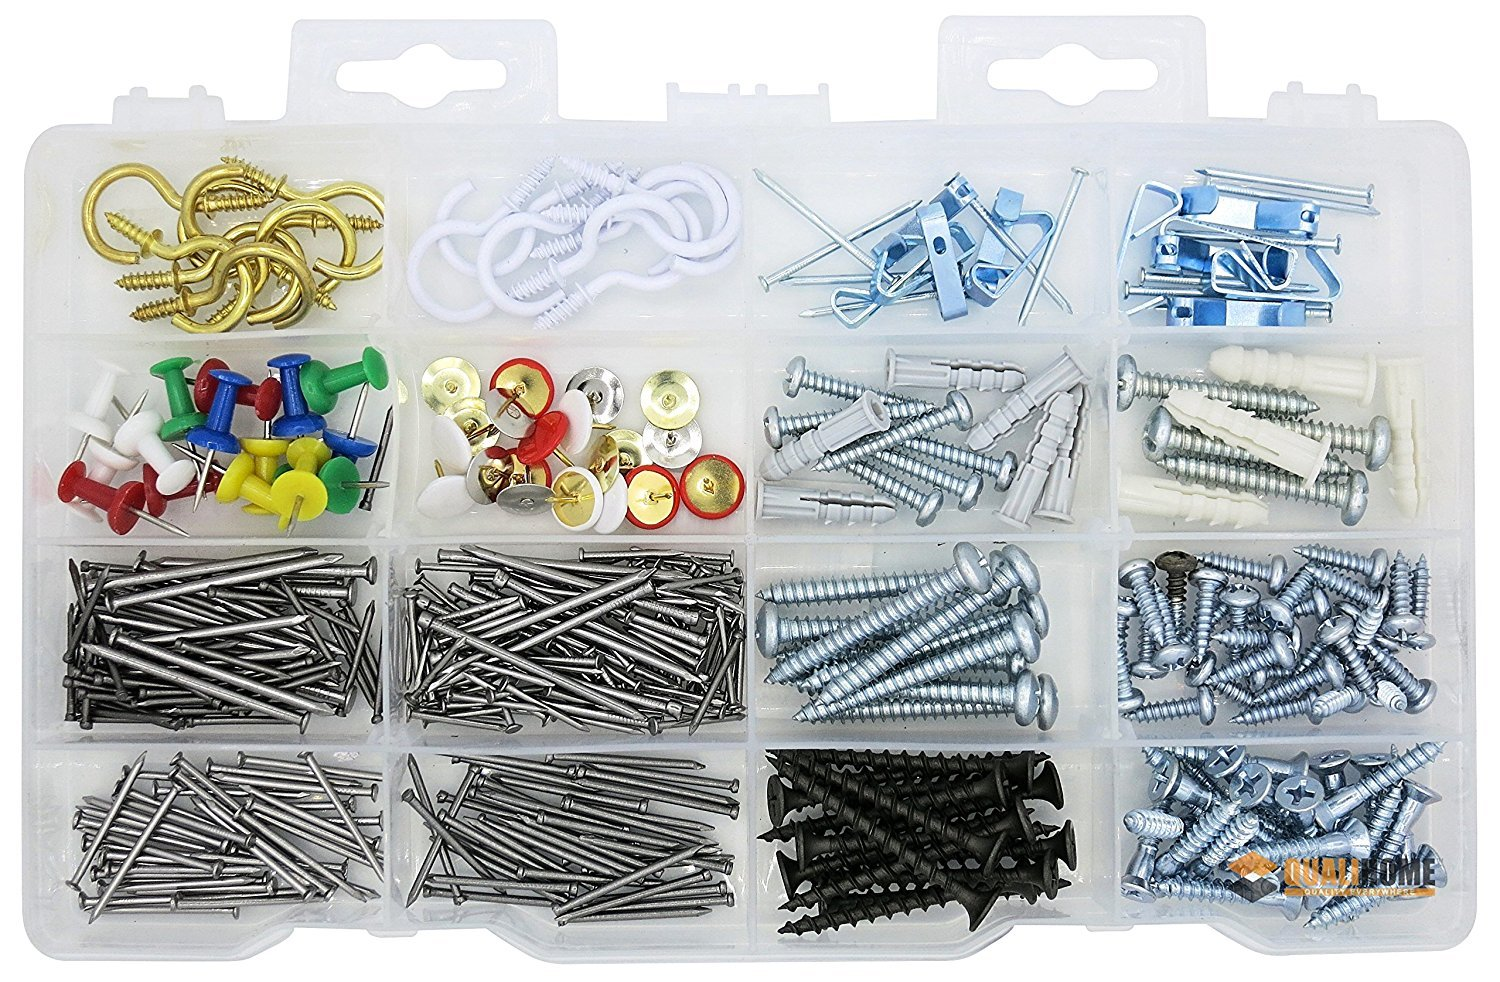 Household Assortment Kit Cup Hooks Picture Hangers Push Pins Thumb Tacks Brads Plastic Anchors Screws and Nails 360 Pieces.